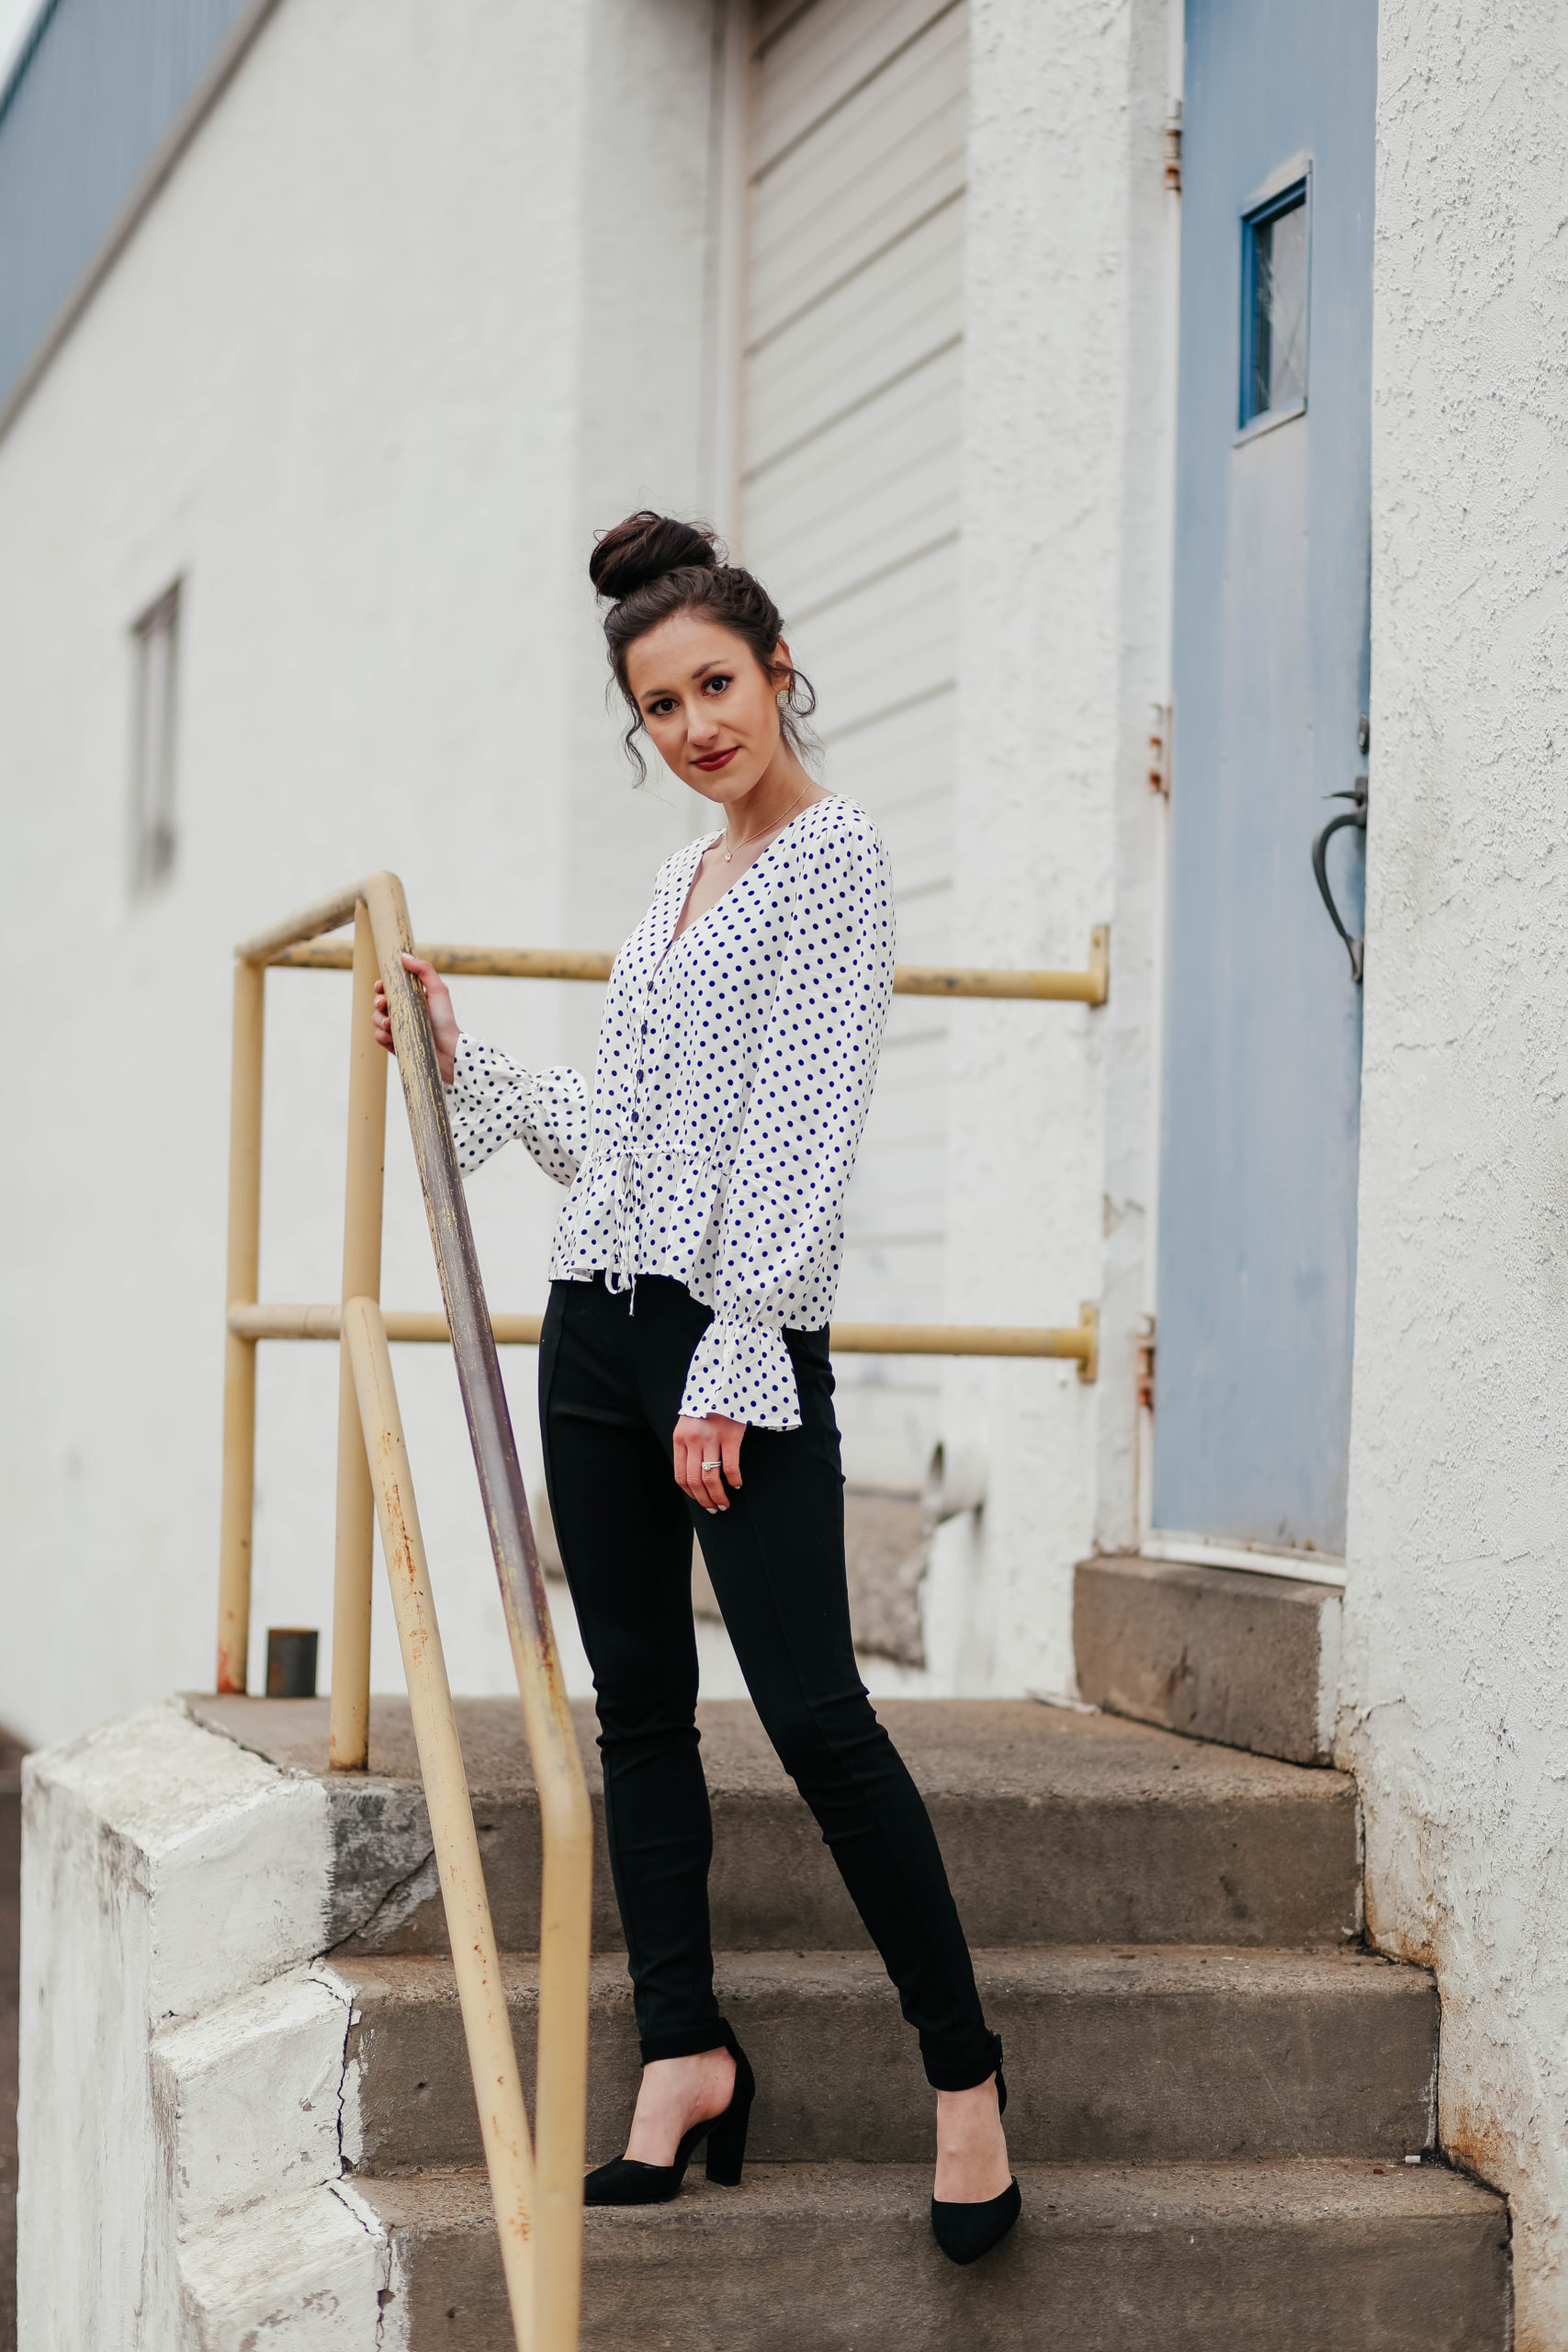 From Desk to Drinks: Polka Dot Blouse + Ponte Pants - Affordable Workwear on Coming Up Roses (UNDER $30 OUTFIT!!!)